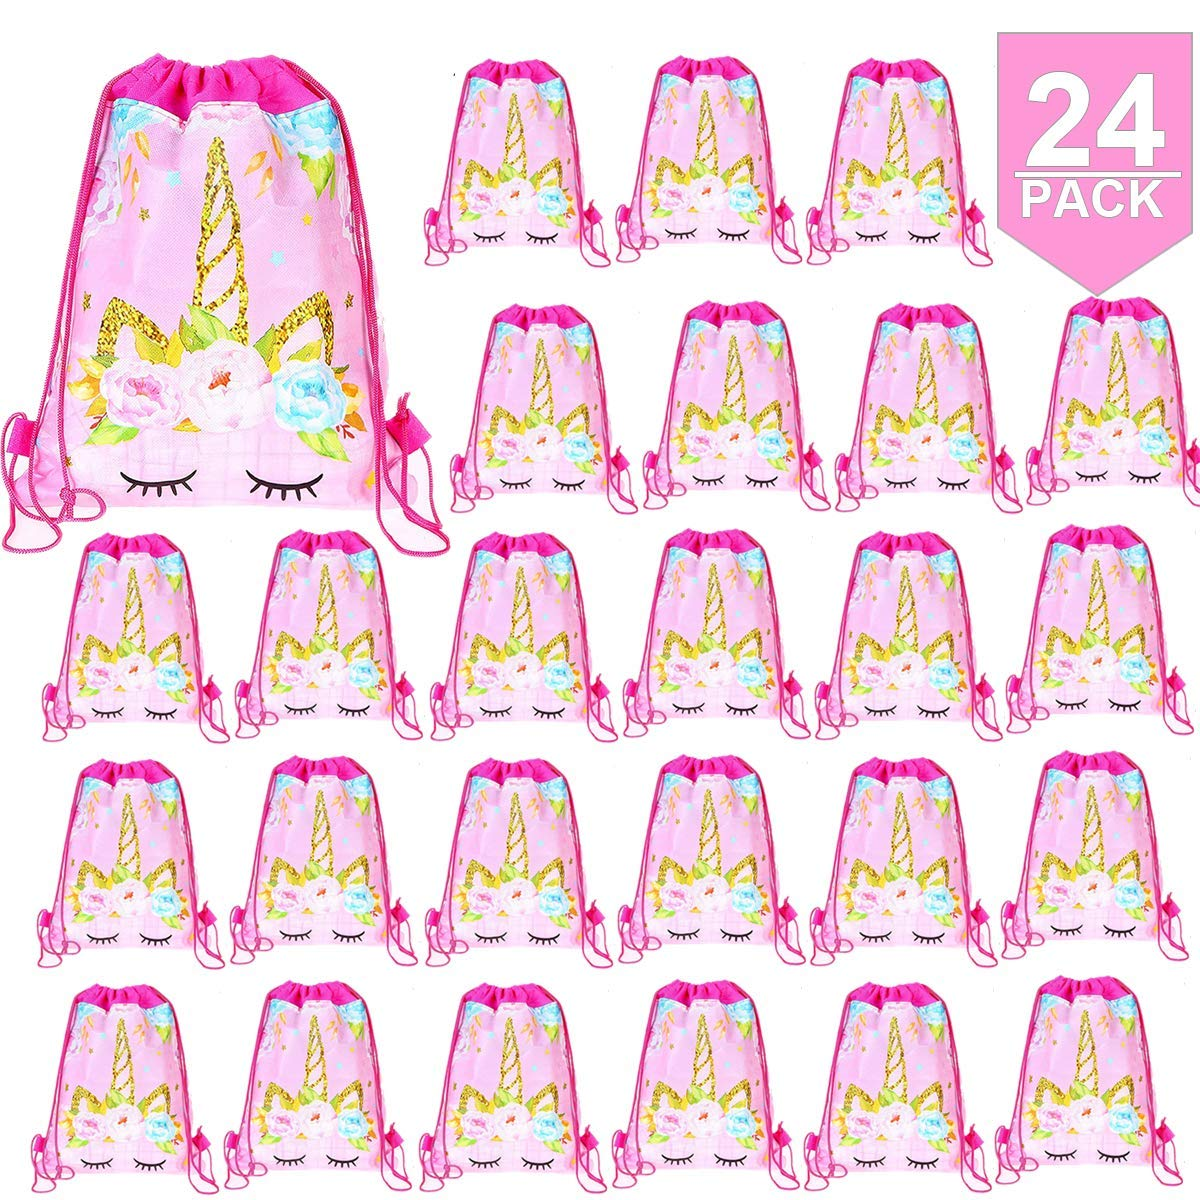 24 Pack Unicorn Drawstring Bag for Gift Bag, Unicorn Party Favor Bags, unicorn party bags for kids birthday Gift Bag Unicorn Party Supplies by POKONBOY